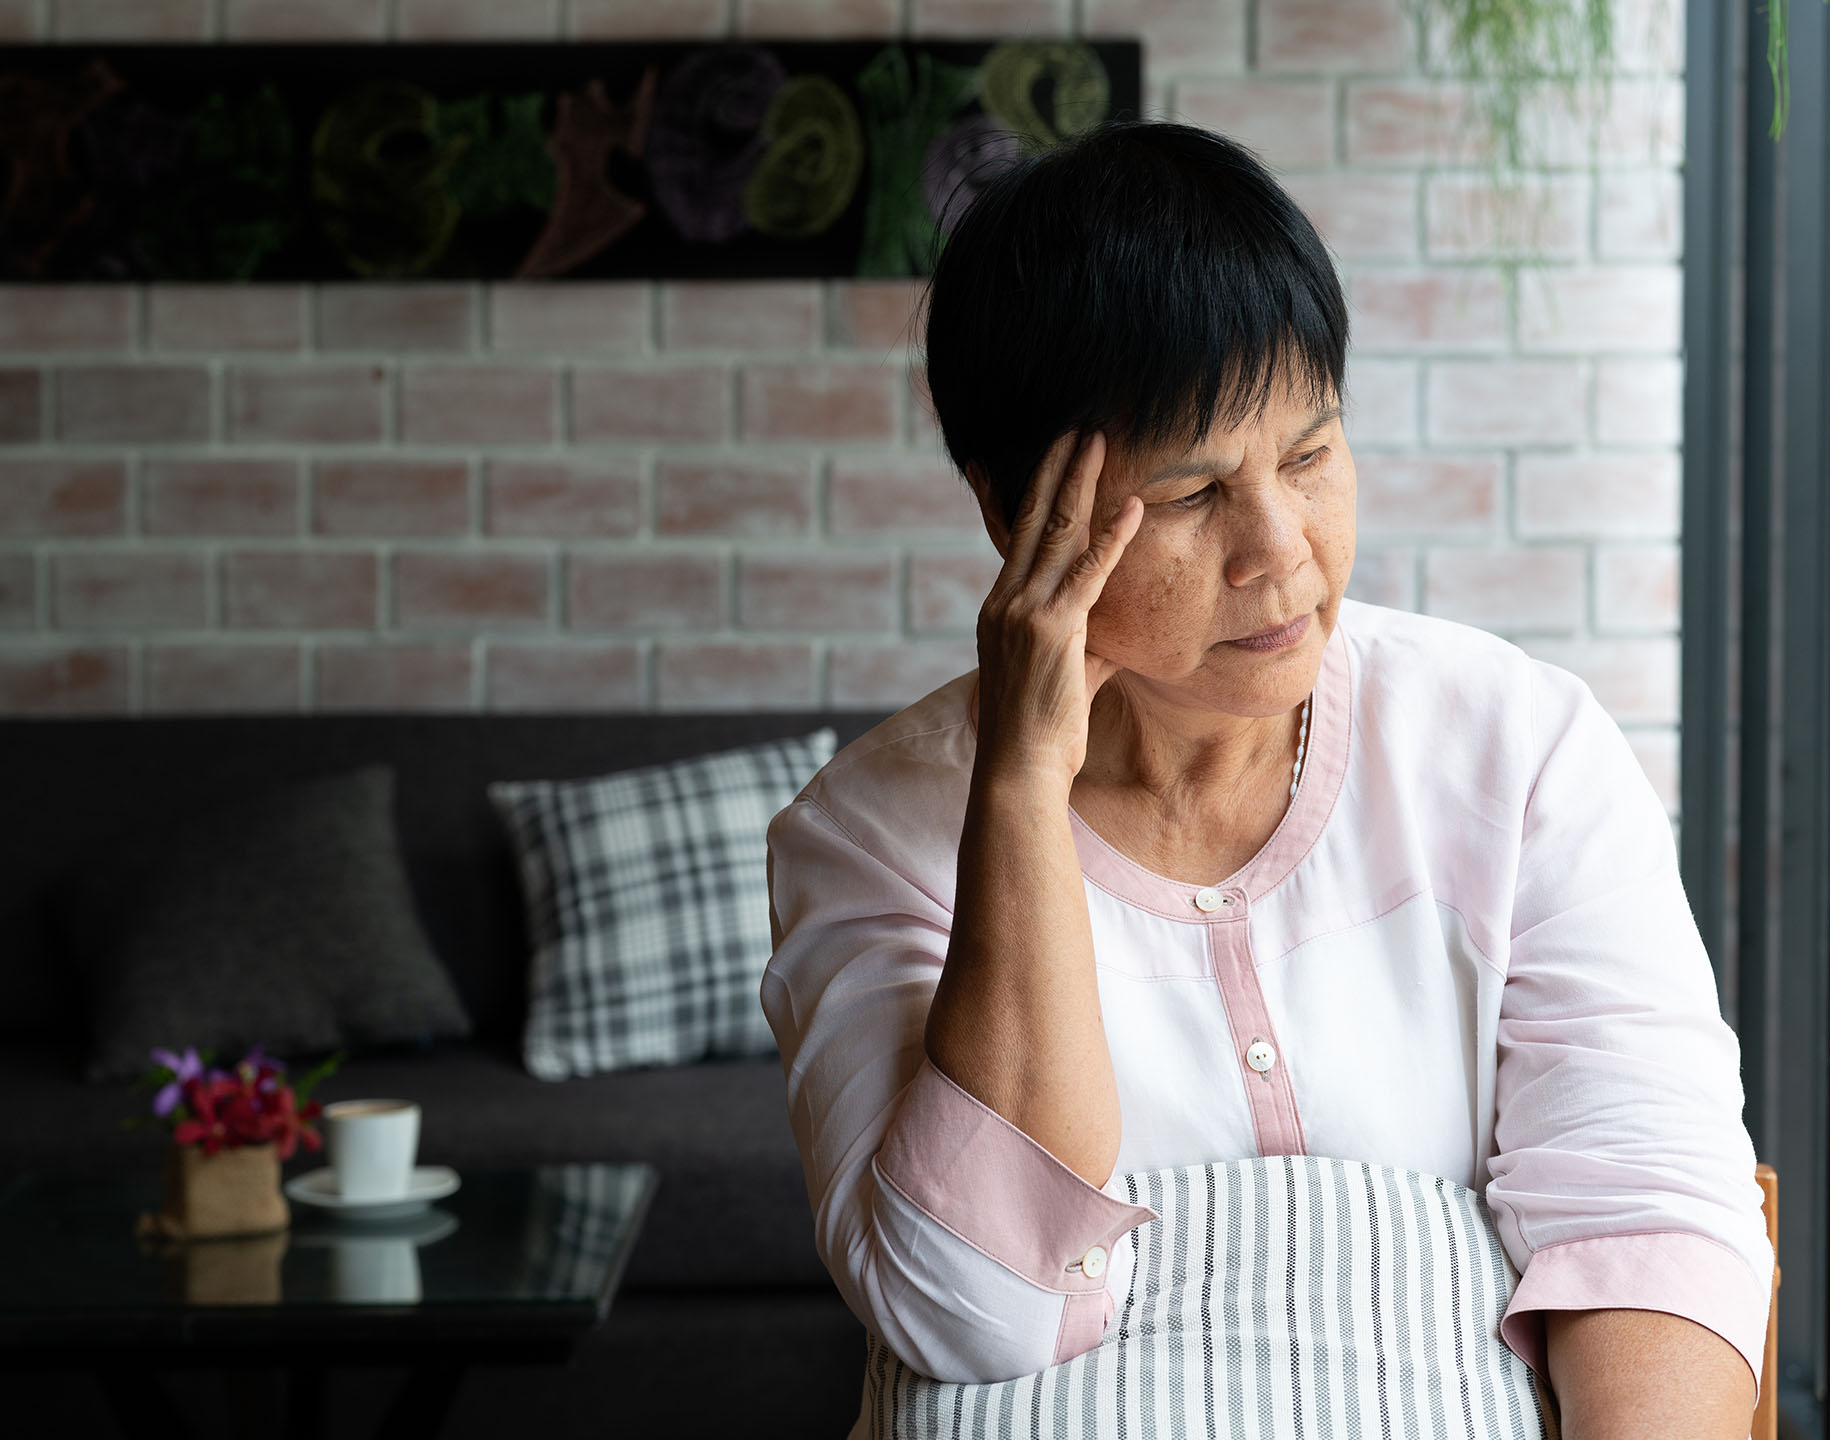 Emotional Abuse, Withdrawal and Silence Around Caretakers (Updated July 2021)